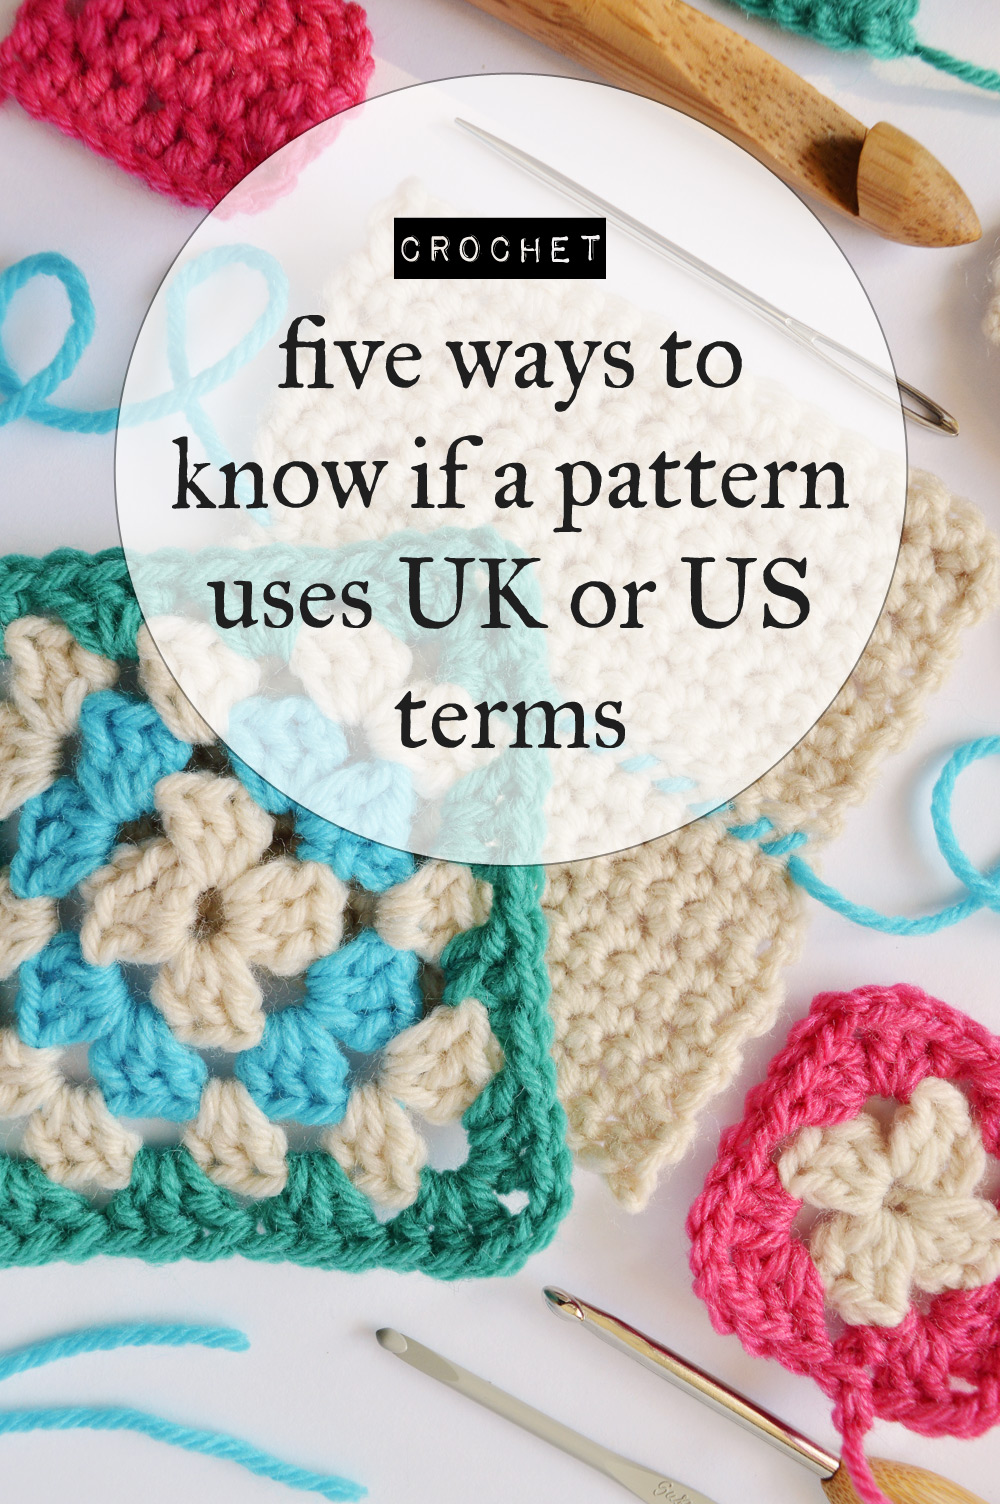 Crocheting Vocabulary : How to know if a crochet pattern uses UK or US terms @craftingfingers